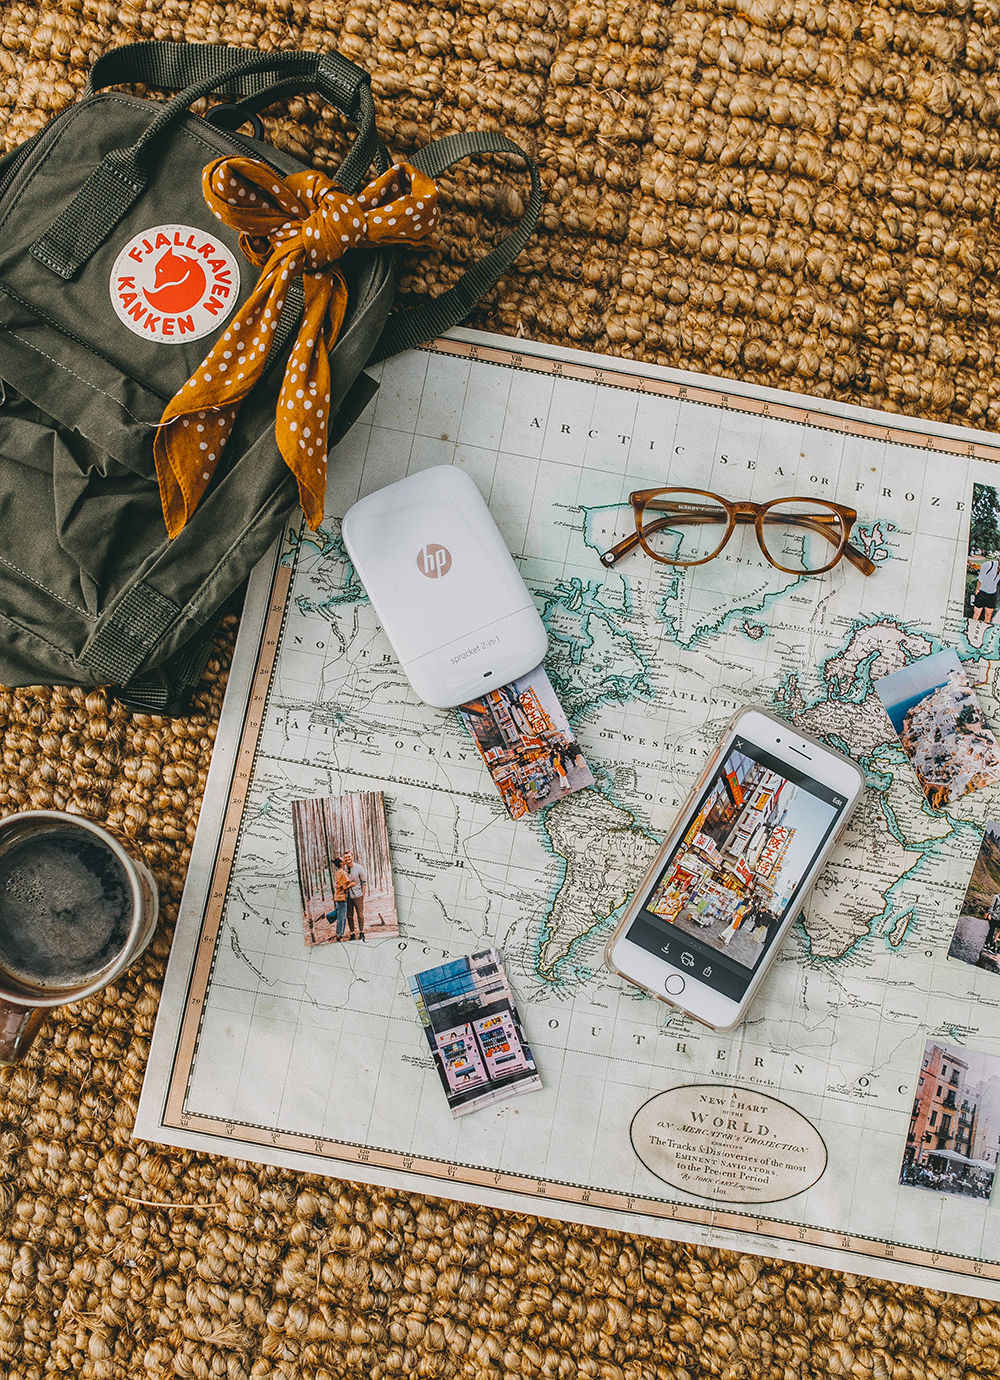 livvyland-blog-olivia-watson-hp-sprocket-portable-photo-printer-adventure-vacation-6